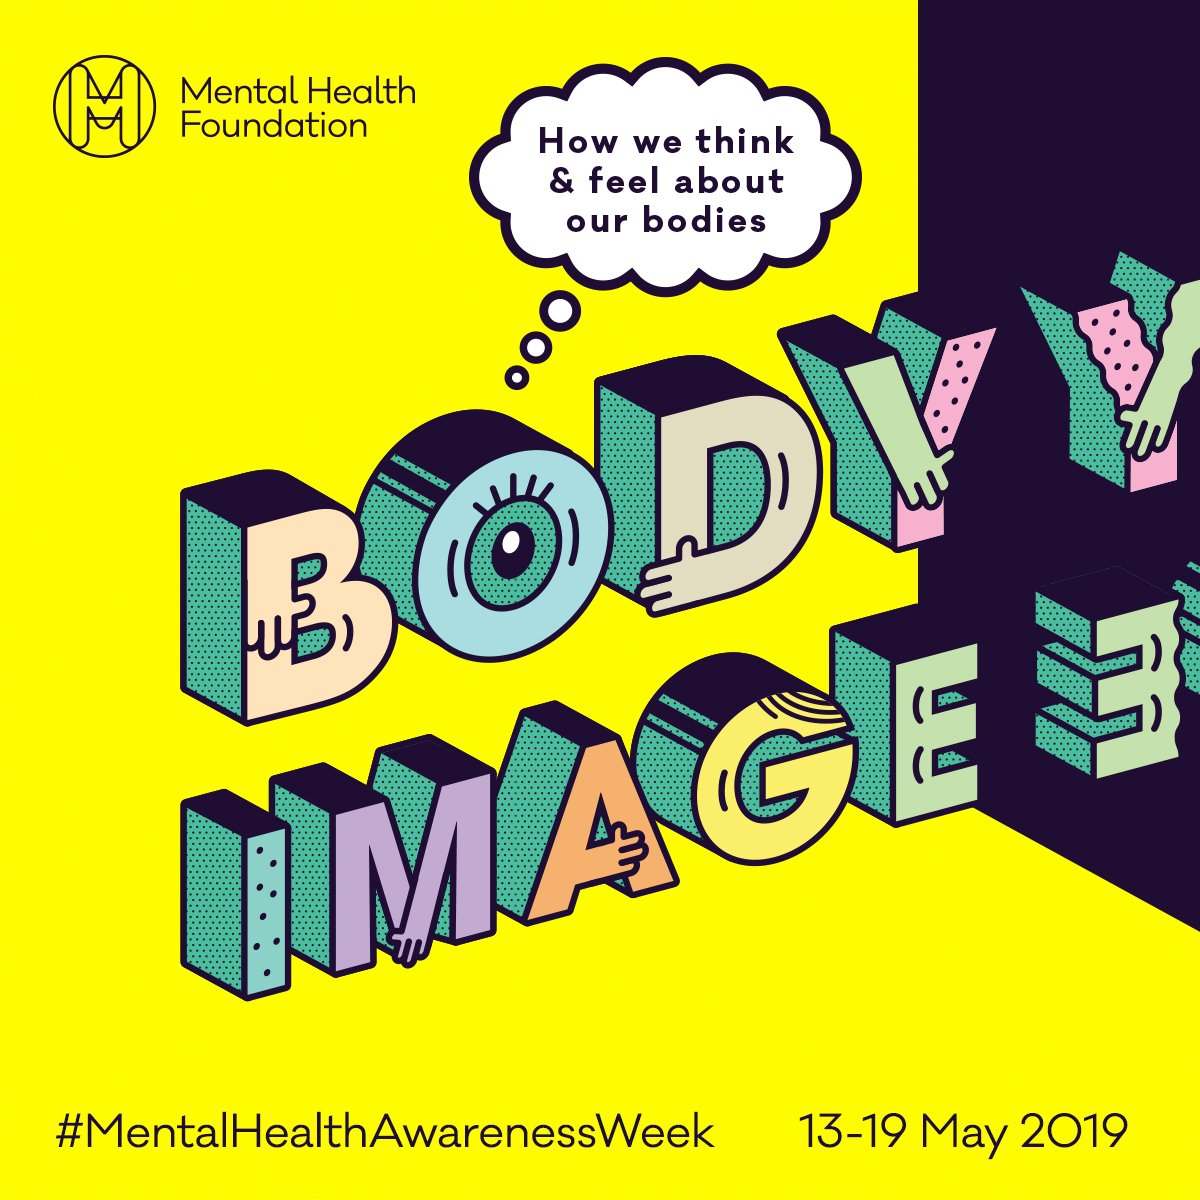 Want to get involved in #MentalHealthAwarenessWeek? @TimetoChange are hosting a discussion on Body Image and Mental Health at Westgate tomorrow. Details at https://t.co/mvmw6UO6lV @mentalhealth